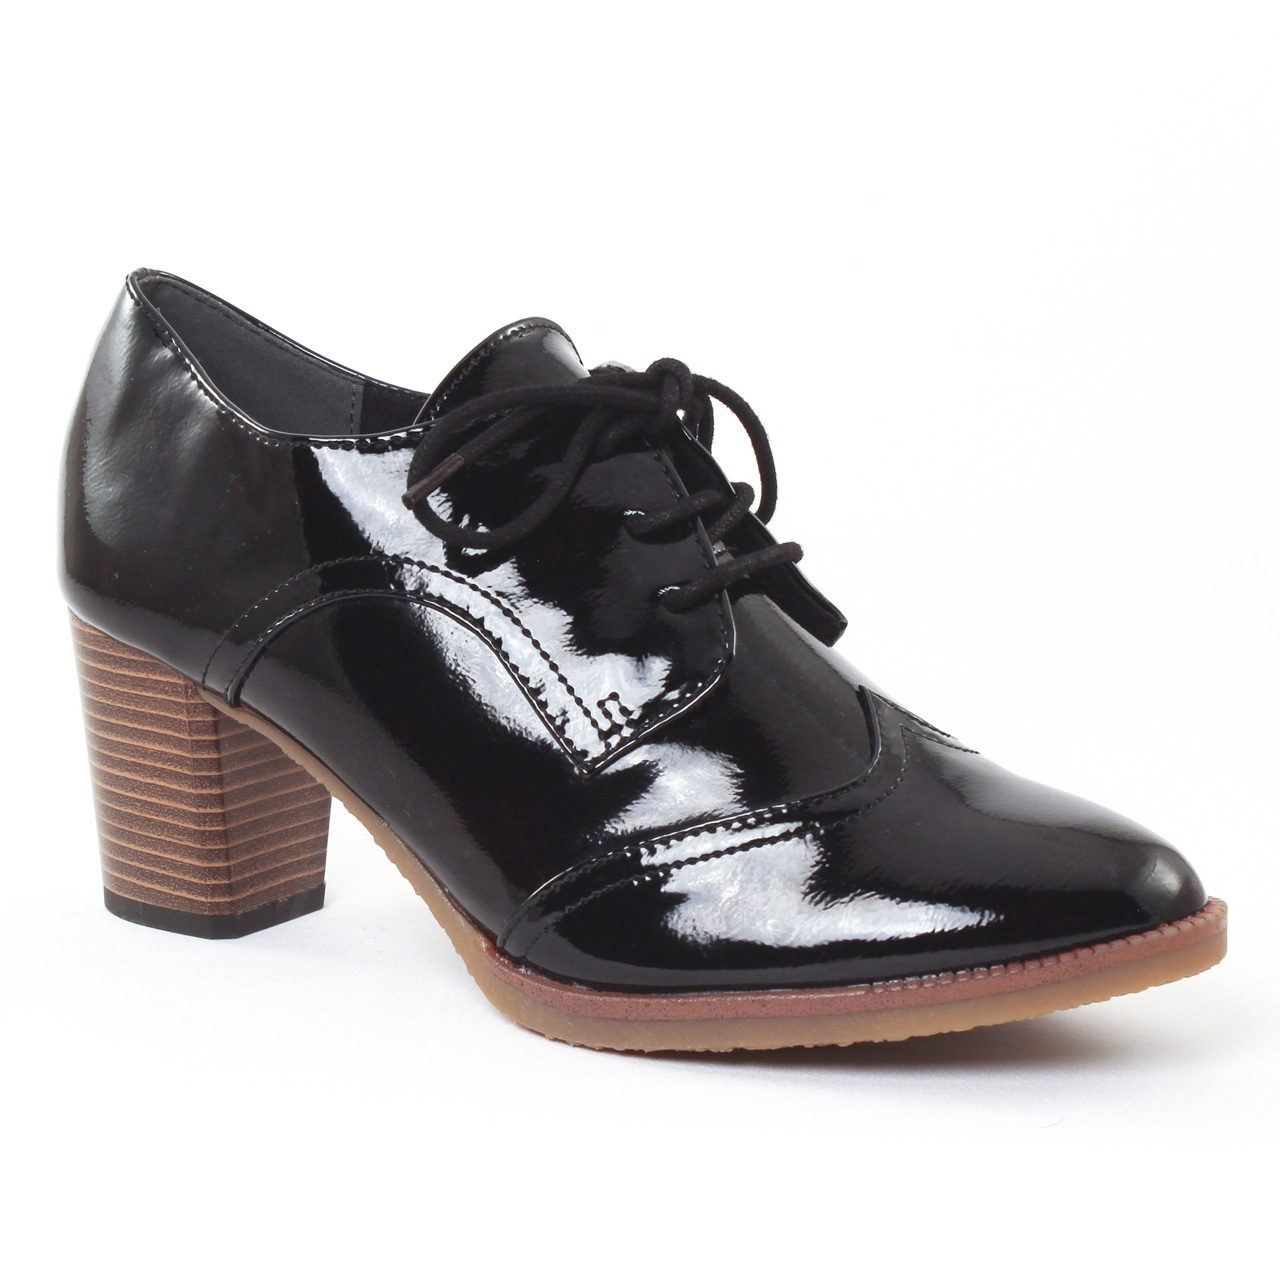 Chaussures Marco Tozzi noires Casual femme NWKmB1